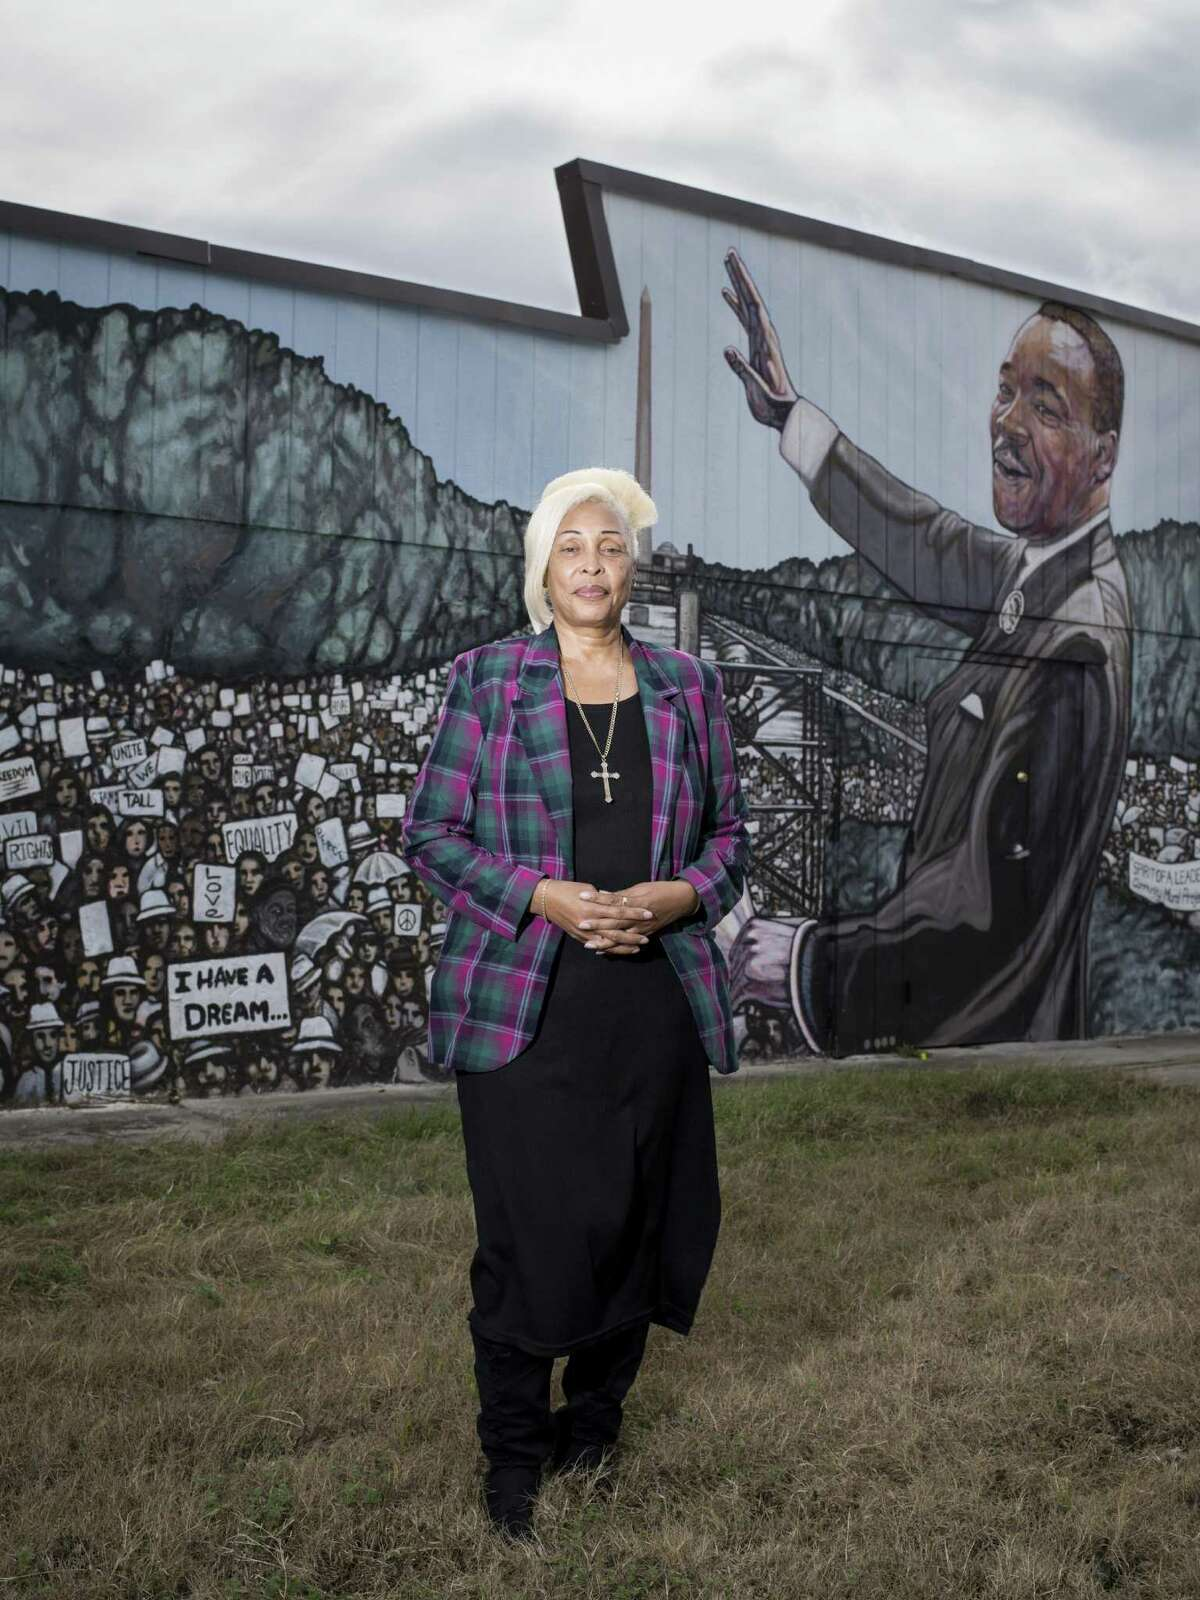 Rosa L. Wilson, pastor of the Greater Faith Institutional Church poses for a portrait in front of the church's mural of Martin Luther King Jr. on Saturday, January 14, 2017 in San Antonio, Texas.